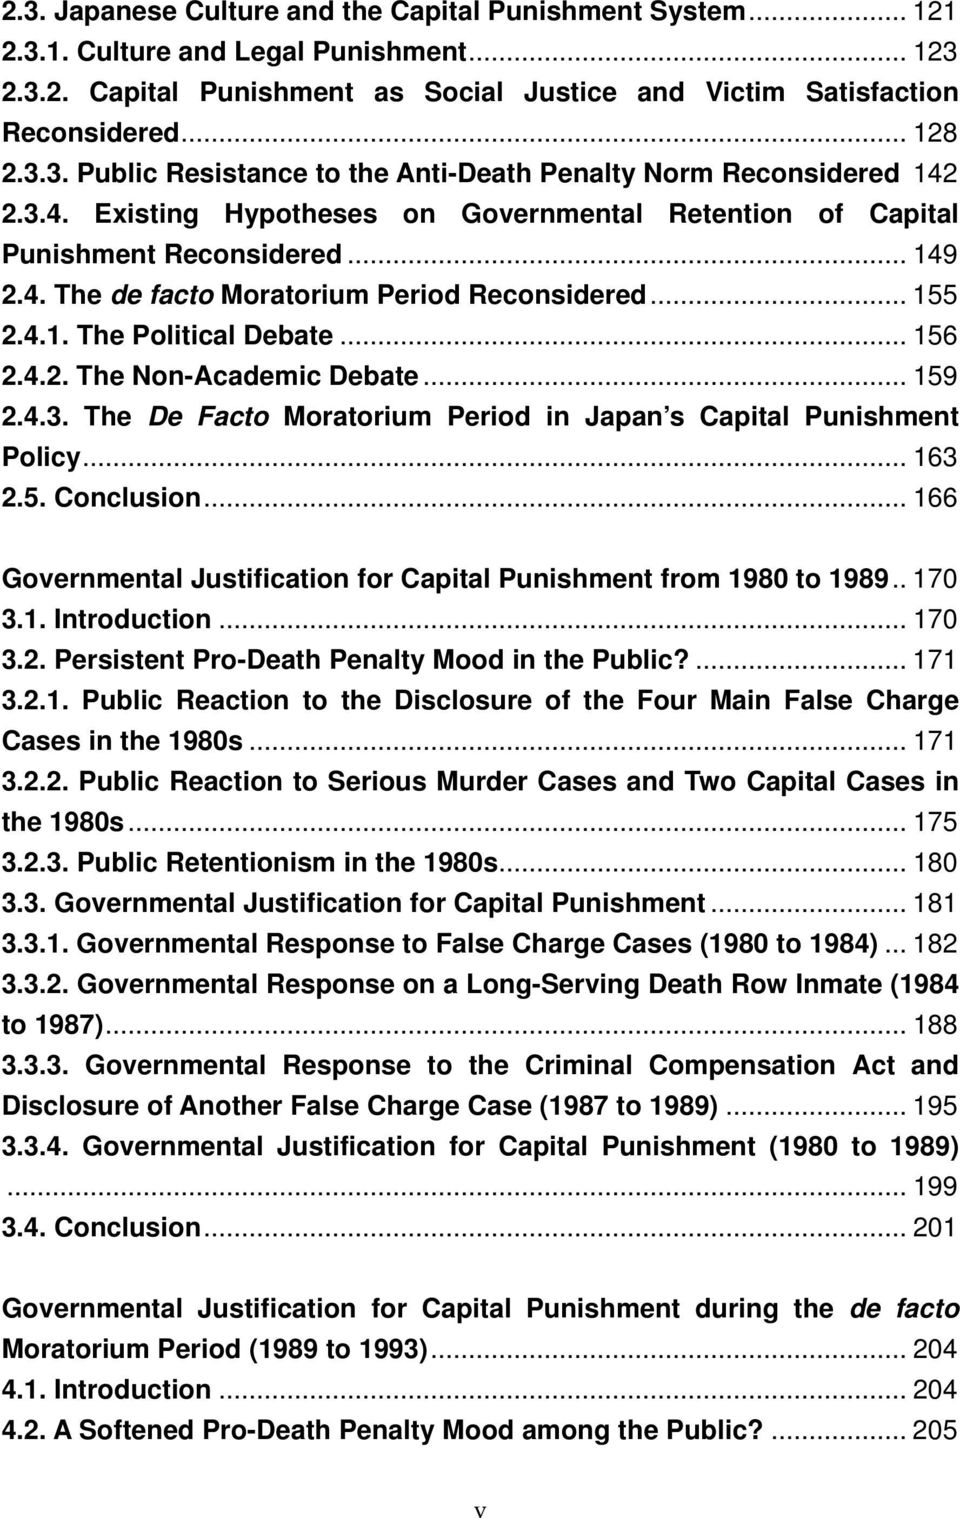 .. 159 2.4.3. The De Facto Moratorium Period in Japan s Capital Punishment Policy... 163 2.5. Conclusion... 166 Governmental Justification for Capital Punishment from 1980 to 1989.. 170 3.1. Introduction.